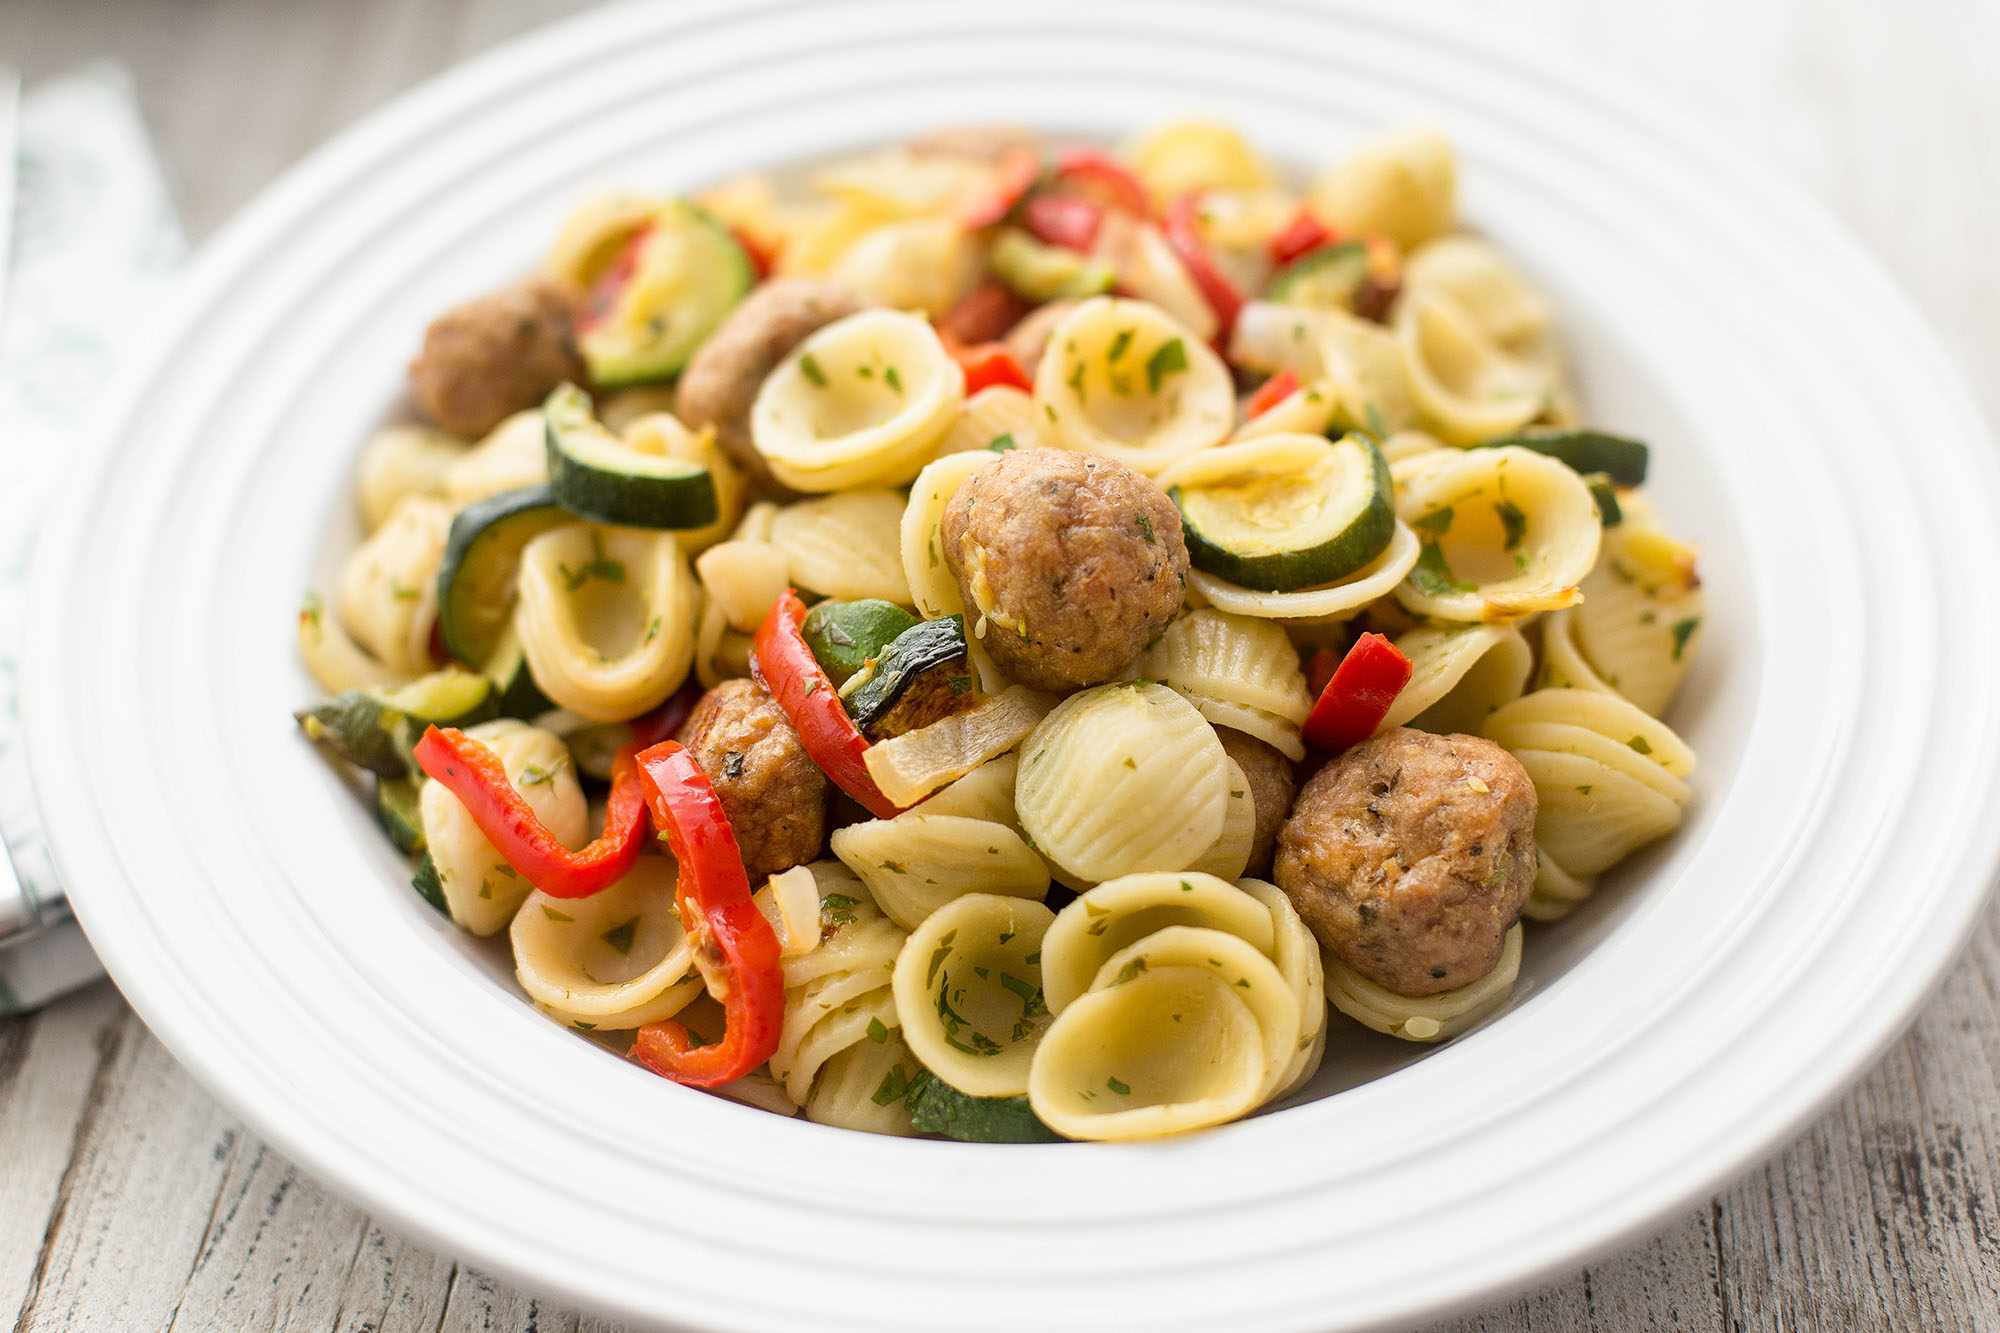 Pasta With Turkey Meatballs and Roasted Vegetables